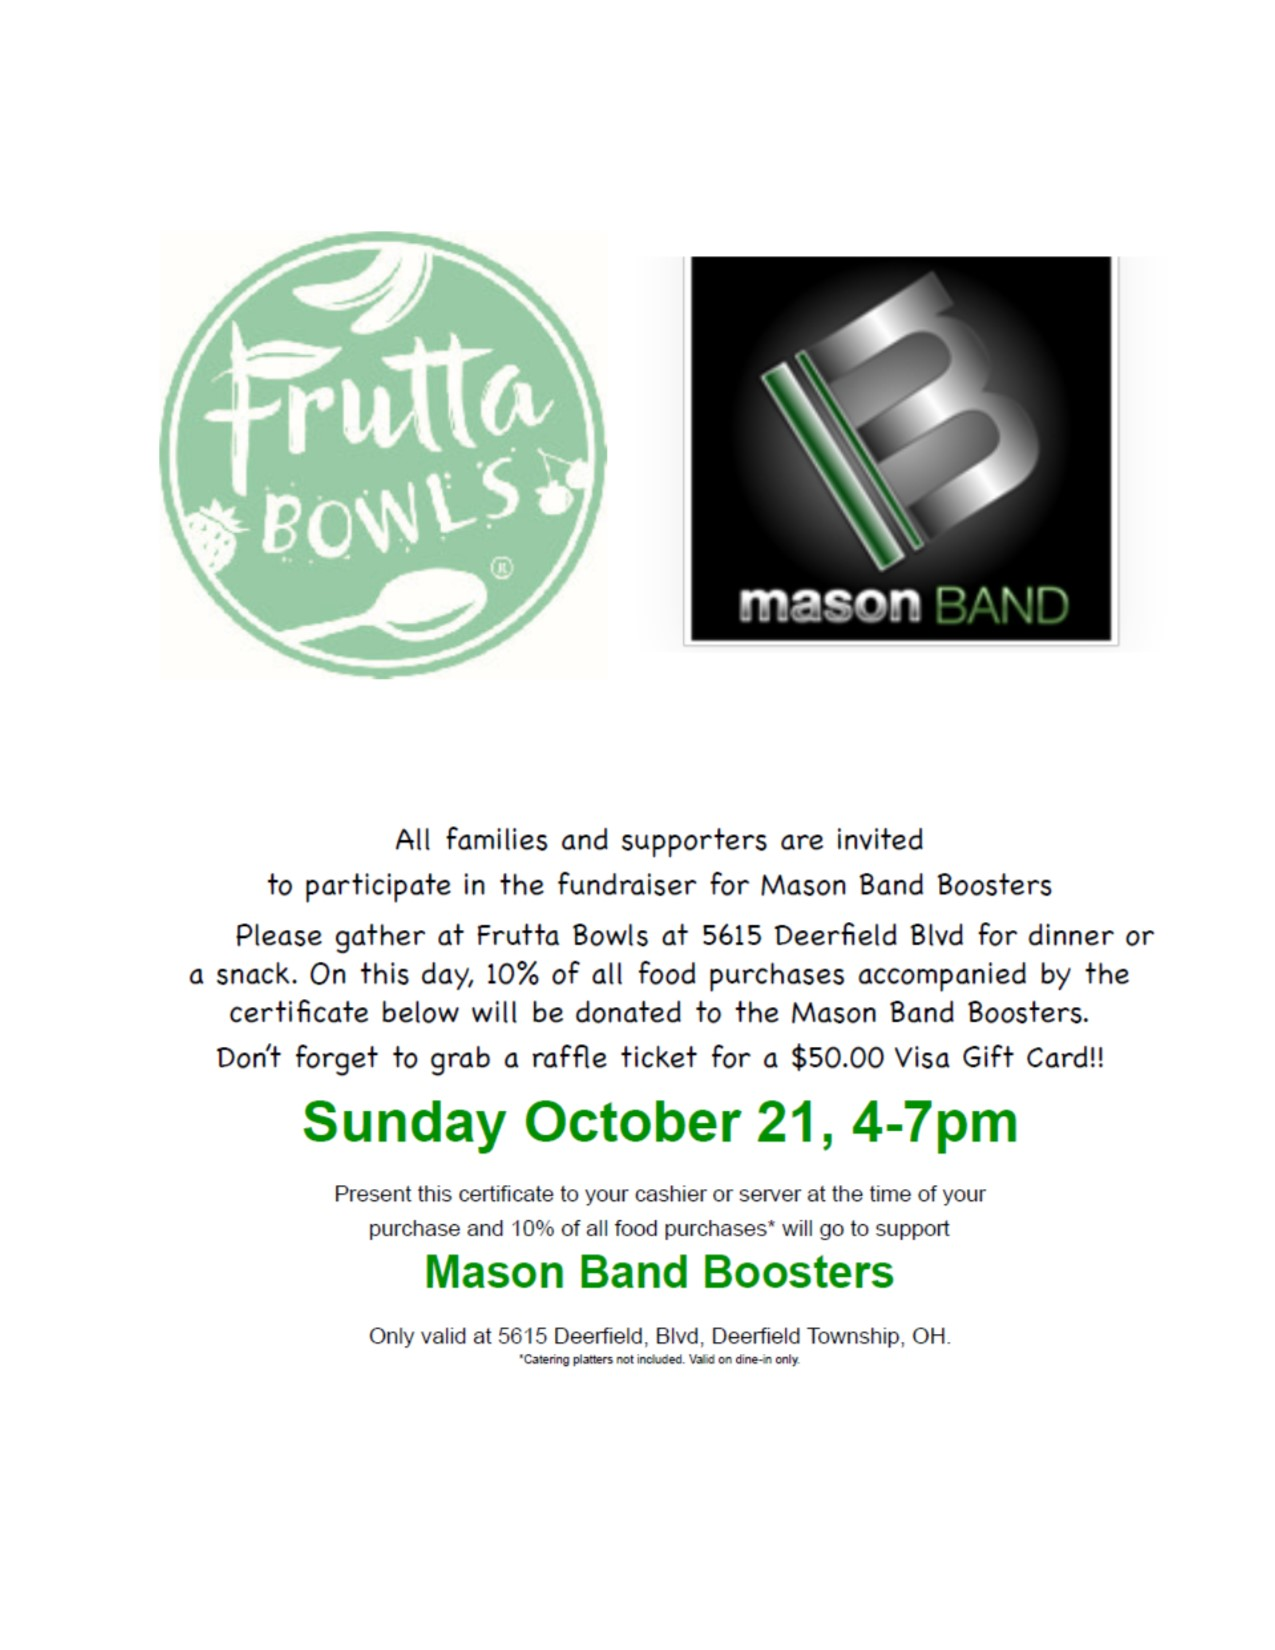 Frutta Bowls Dine and Donate